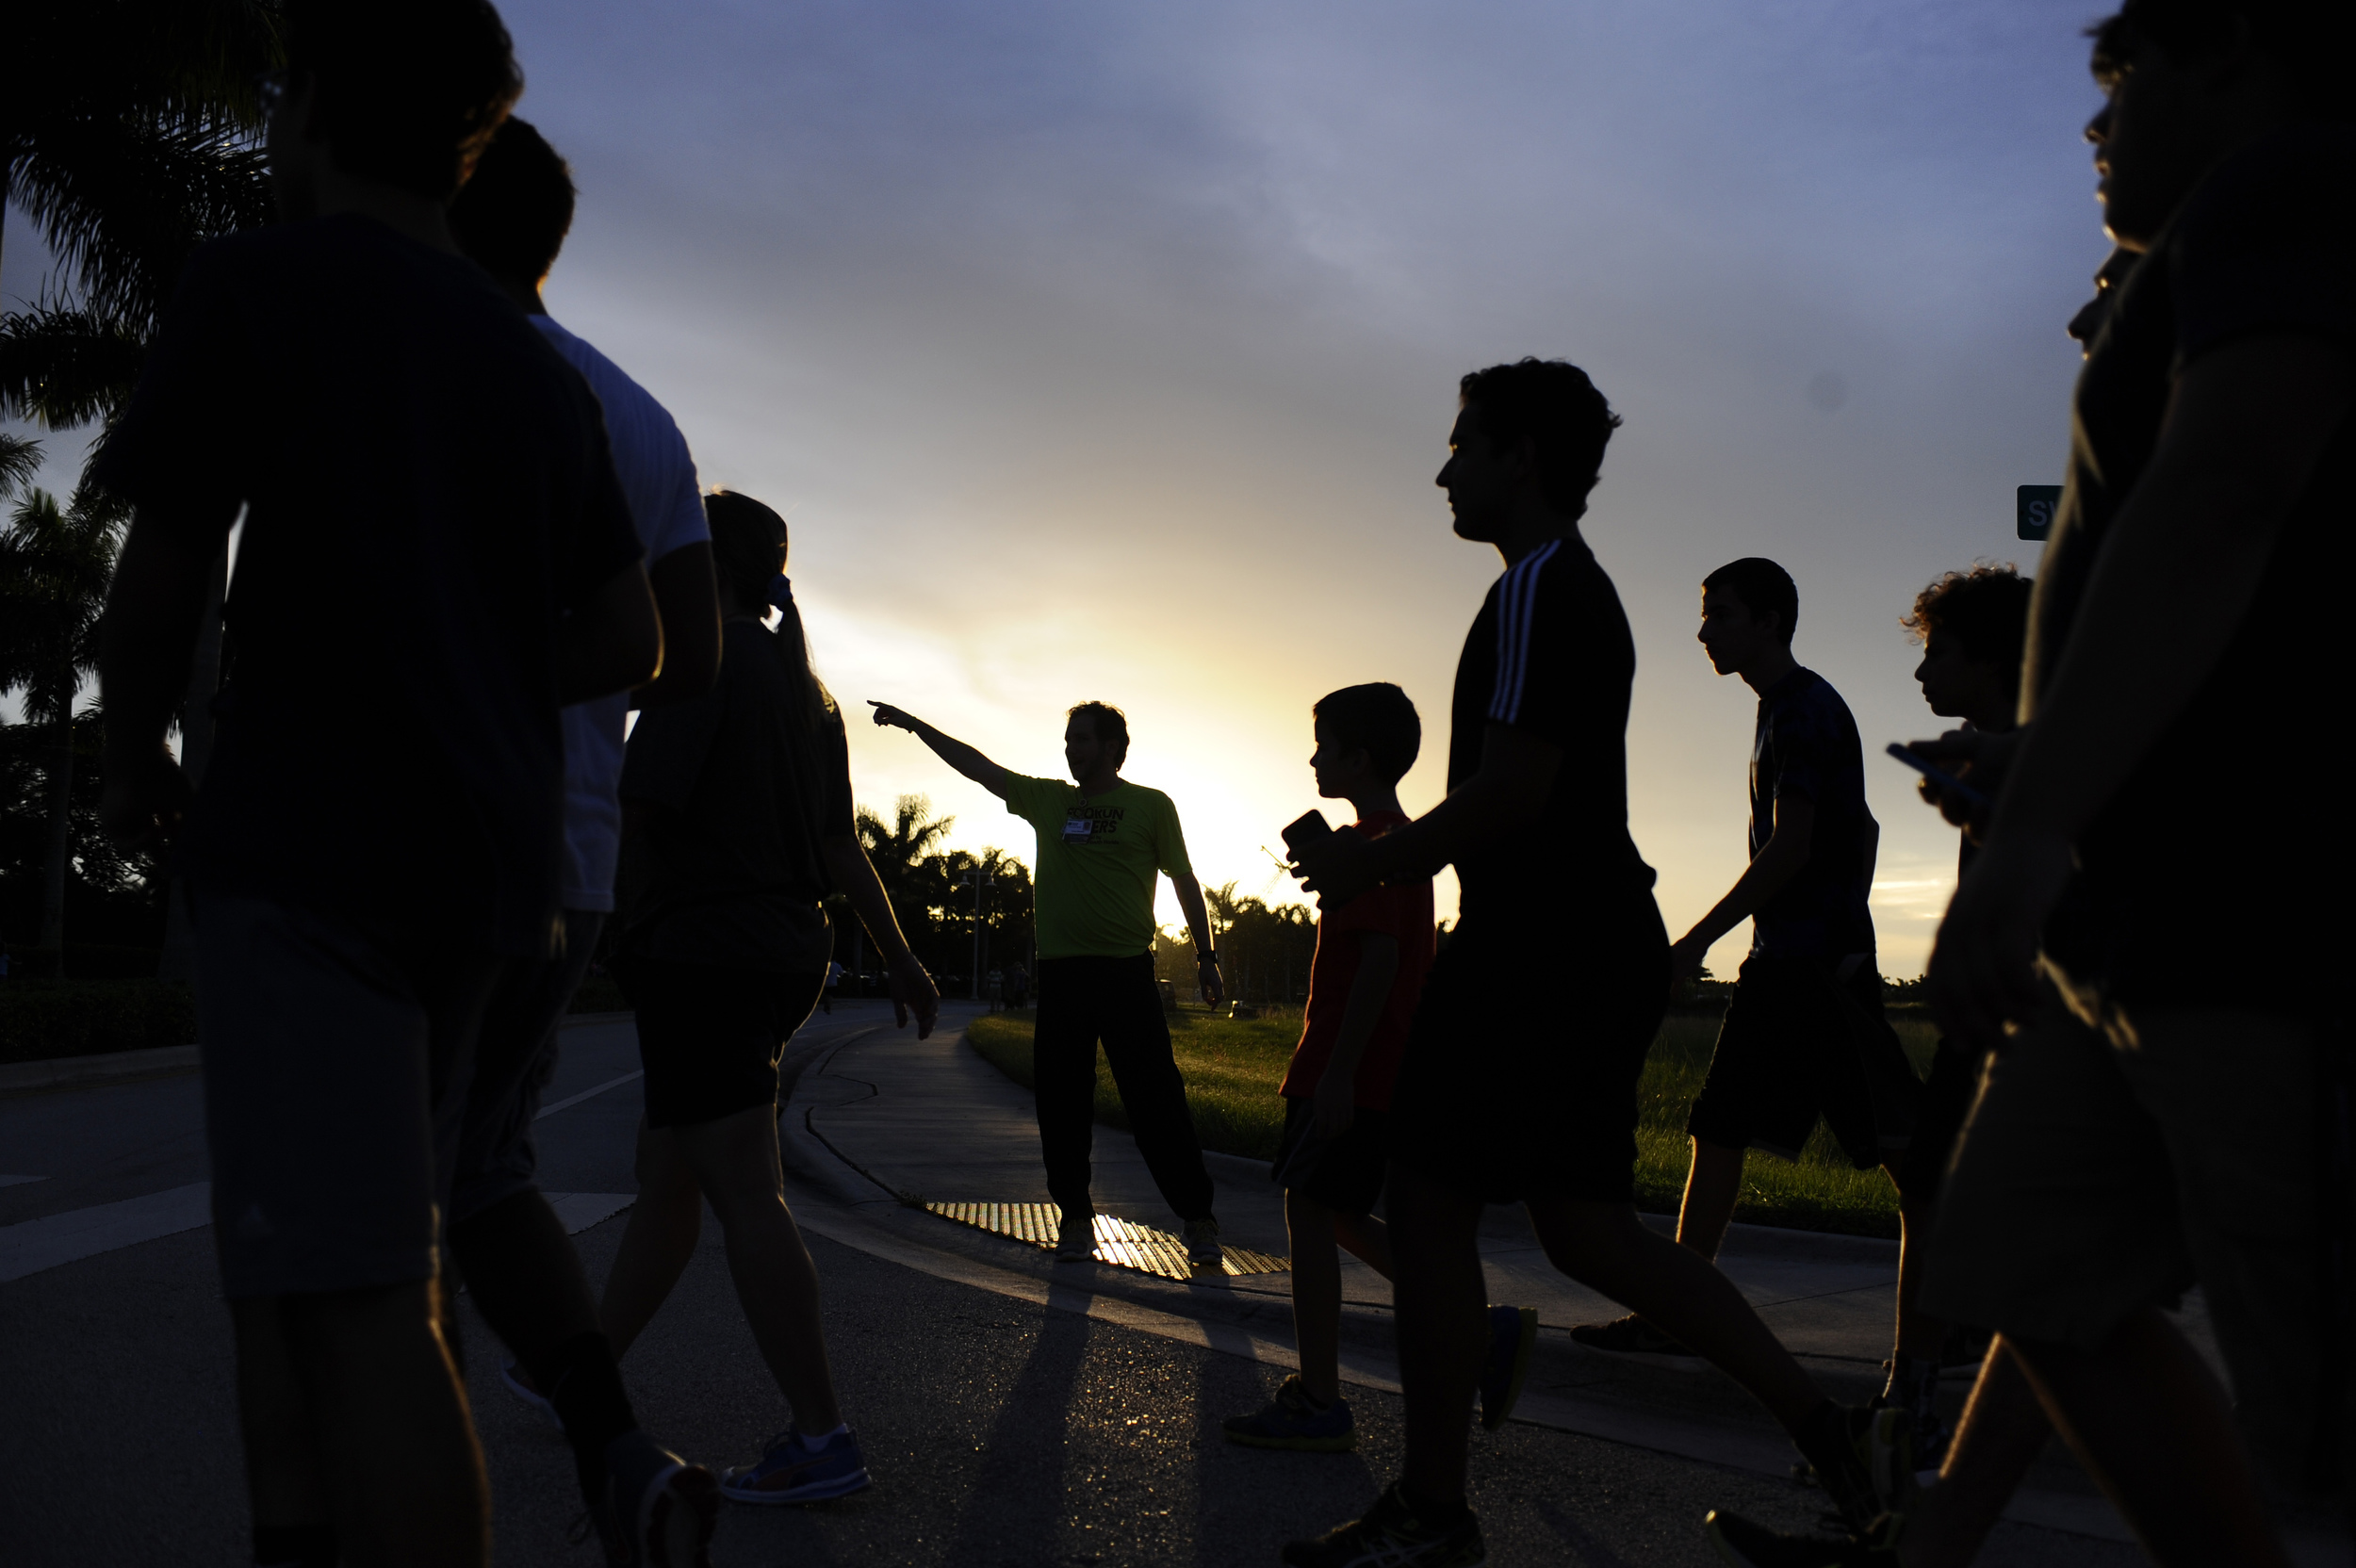 Runners and walkers apart of the Kendall Run Club are directed toward Pokemon Go lures that are dropped around the 3-mile long course. Run clubs across the country have started to incorporate the new app Pokemon Go into their workouts in order to get children outside and active.